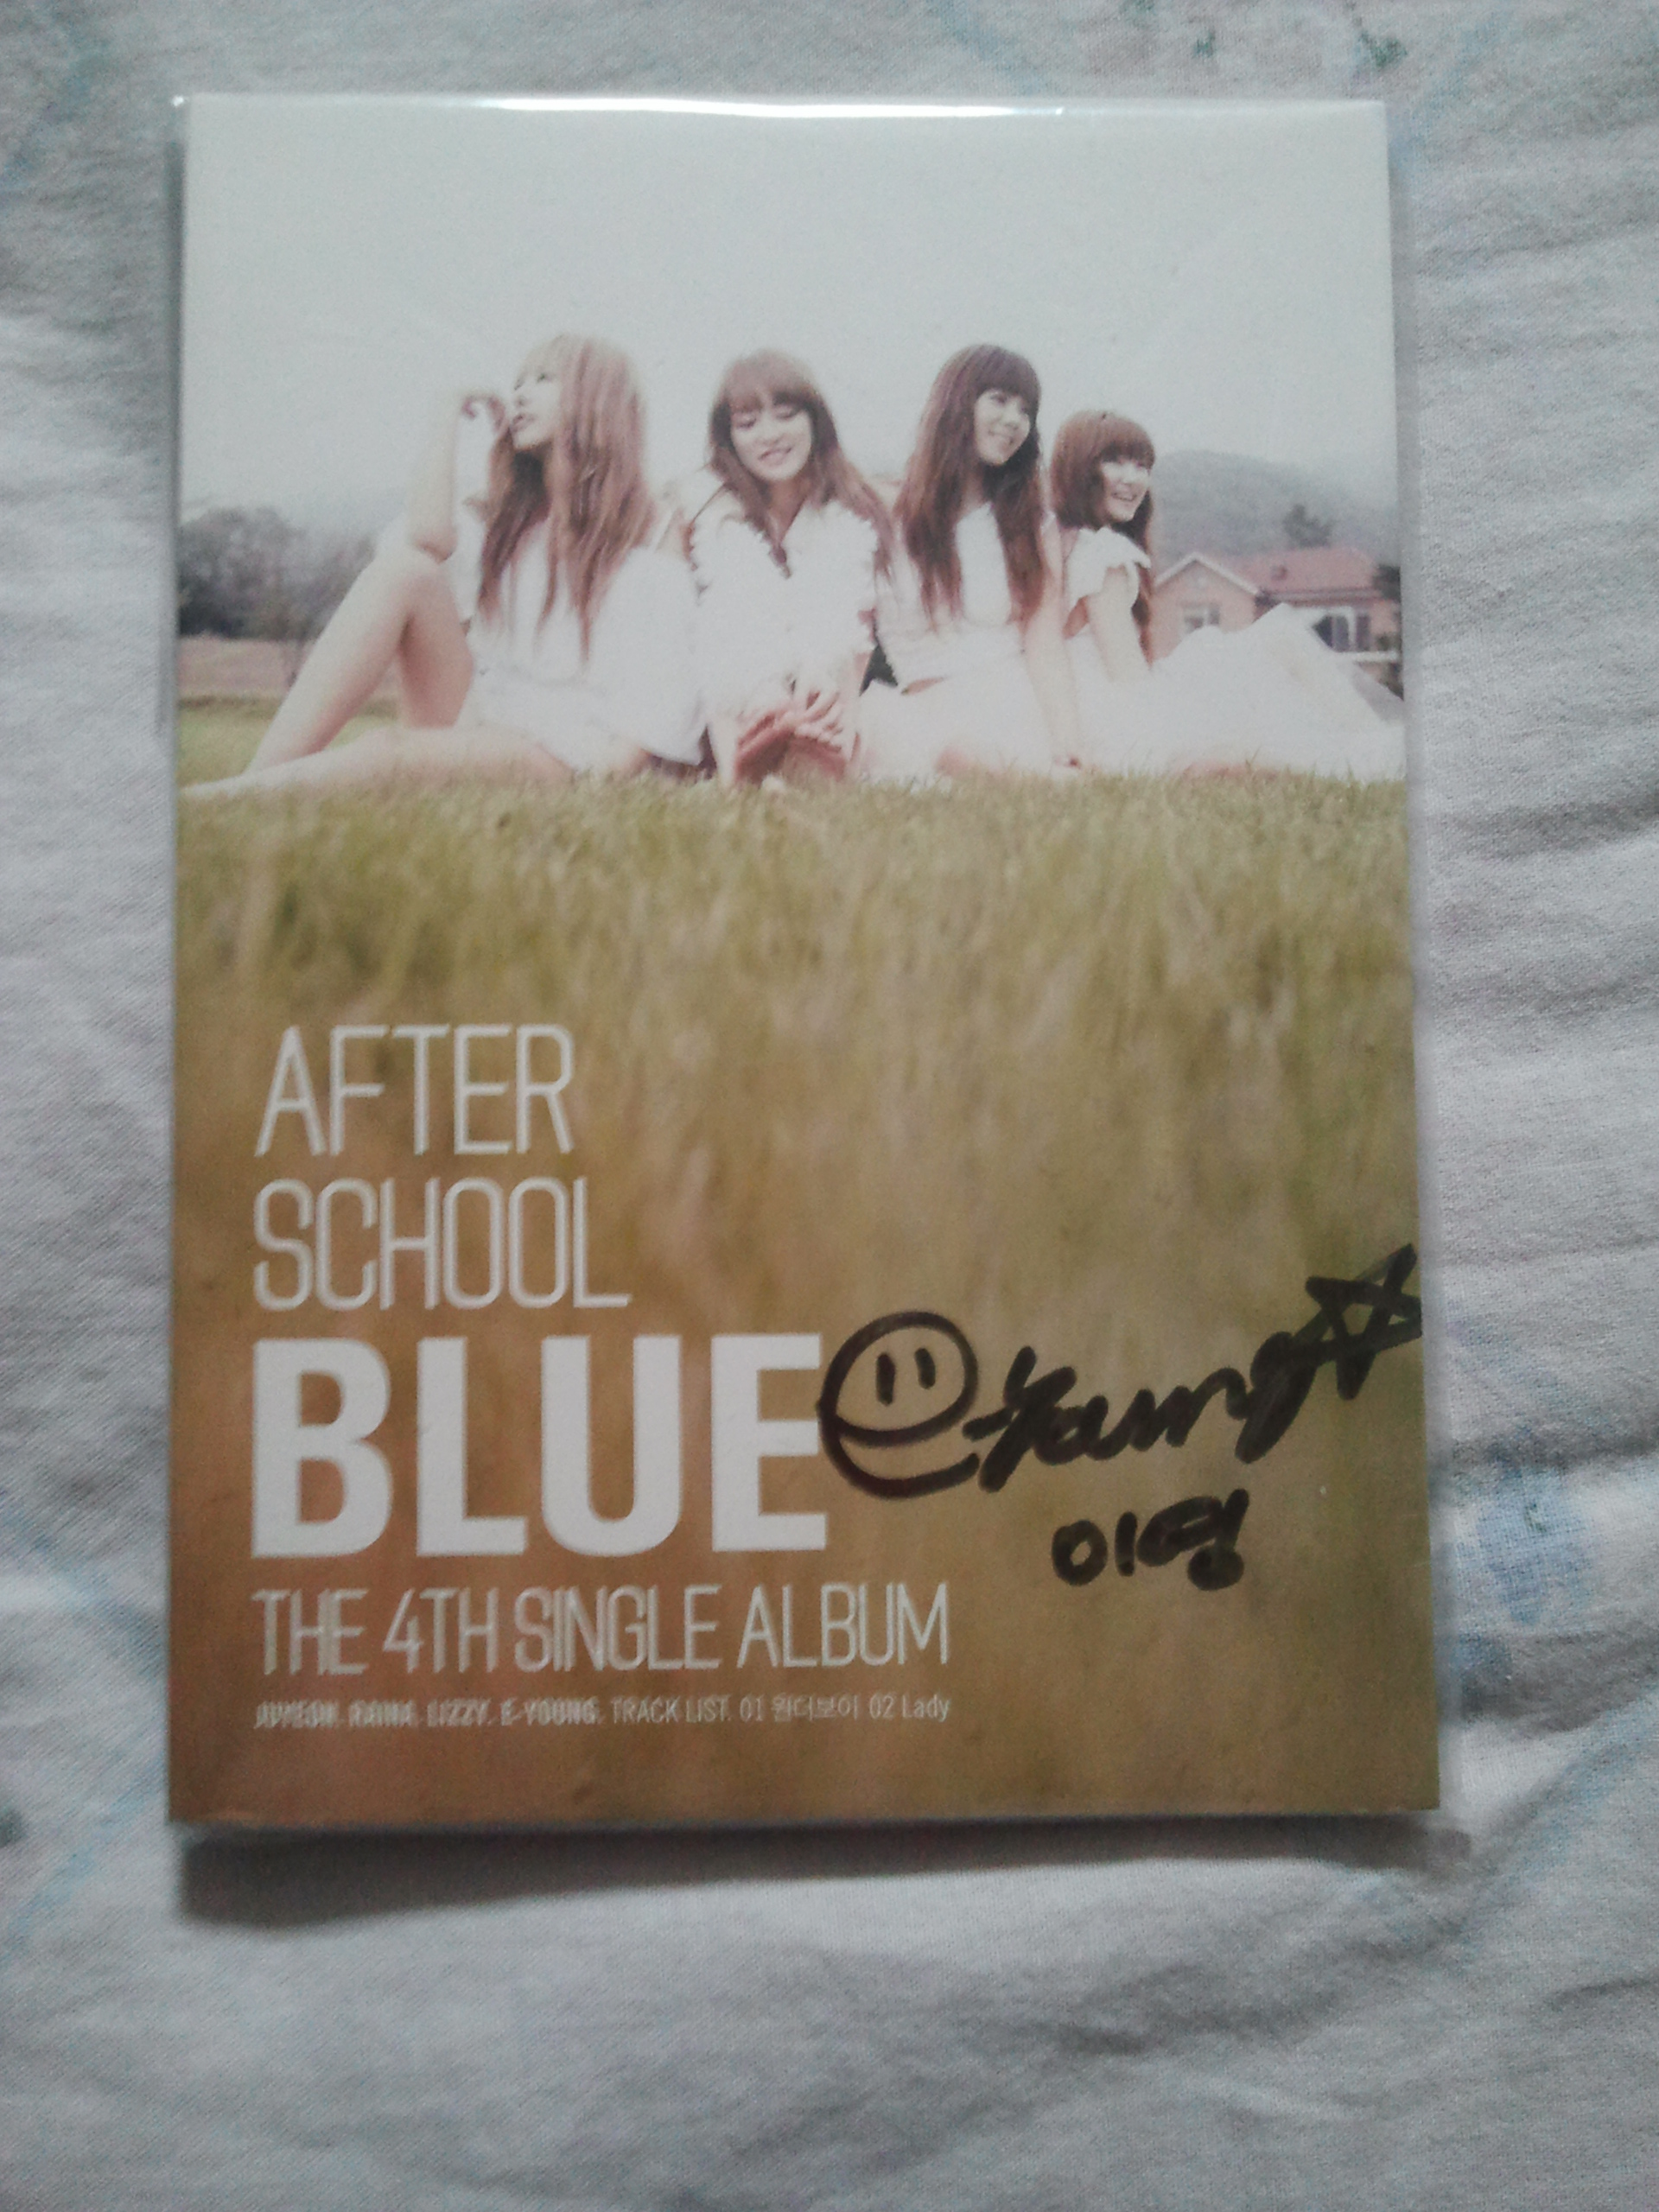 [DISCUSSION] Are the AS members changing their autographs? Calling detective PGZ and PBZ! 65325720140820134318